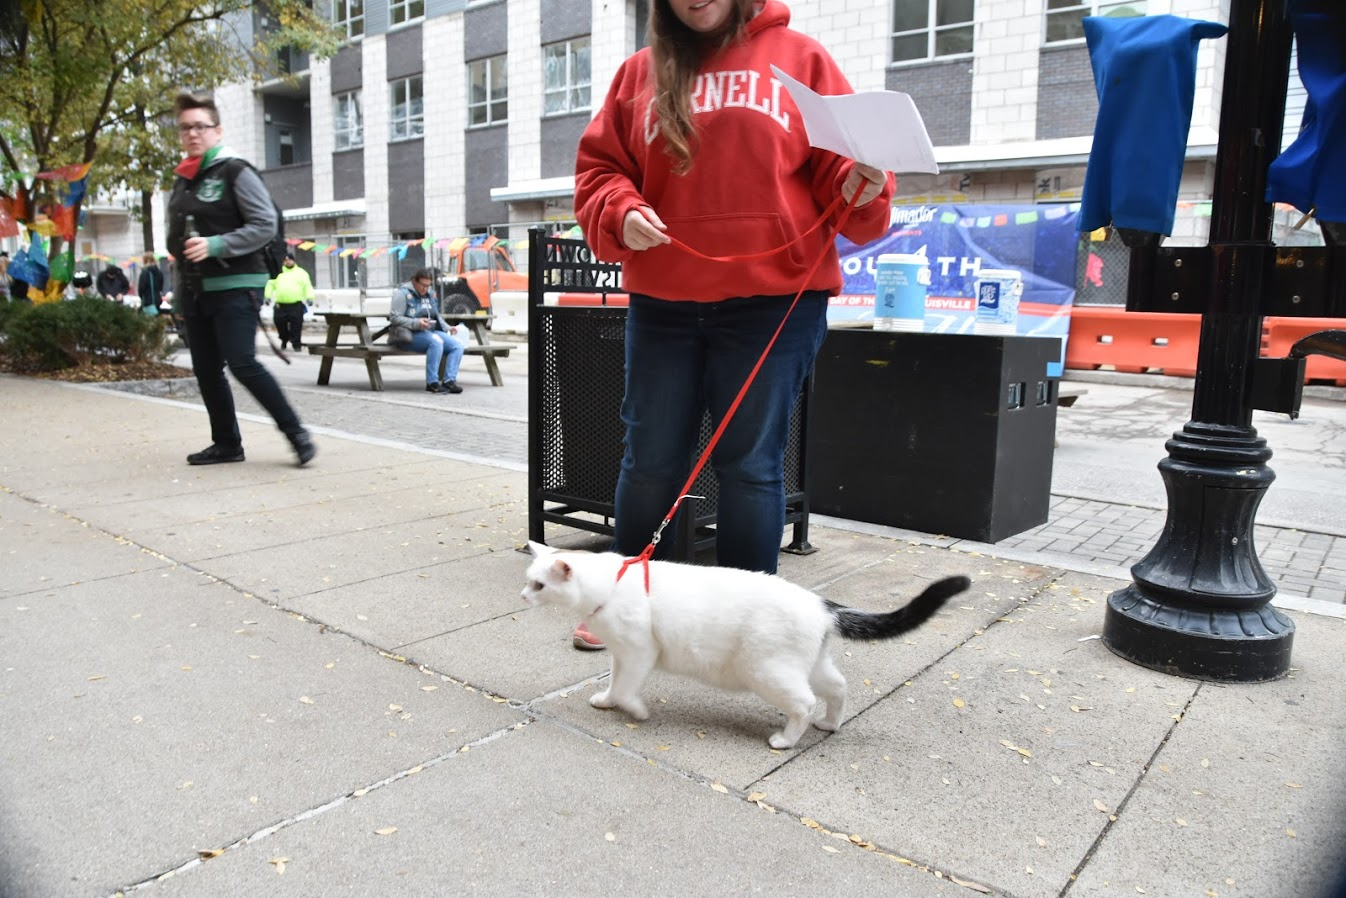 a cat being walked like a dog